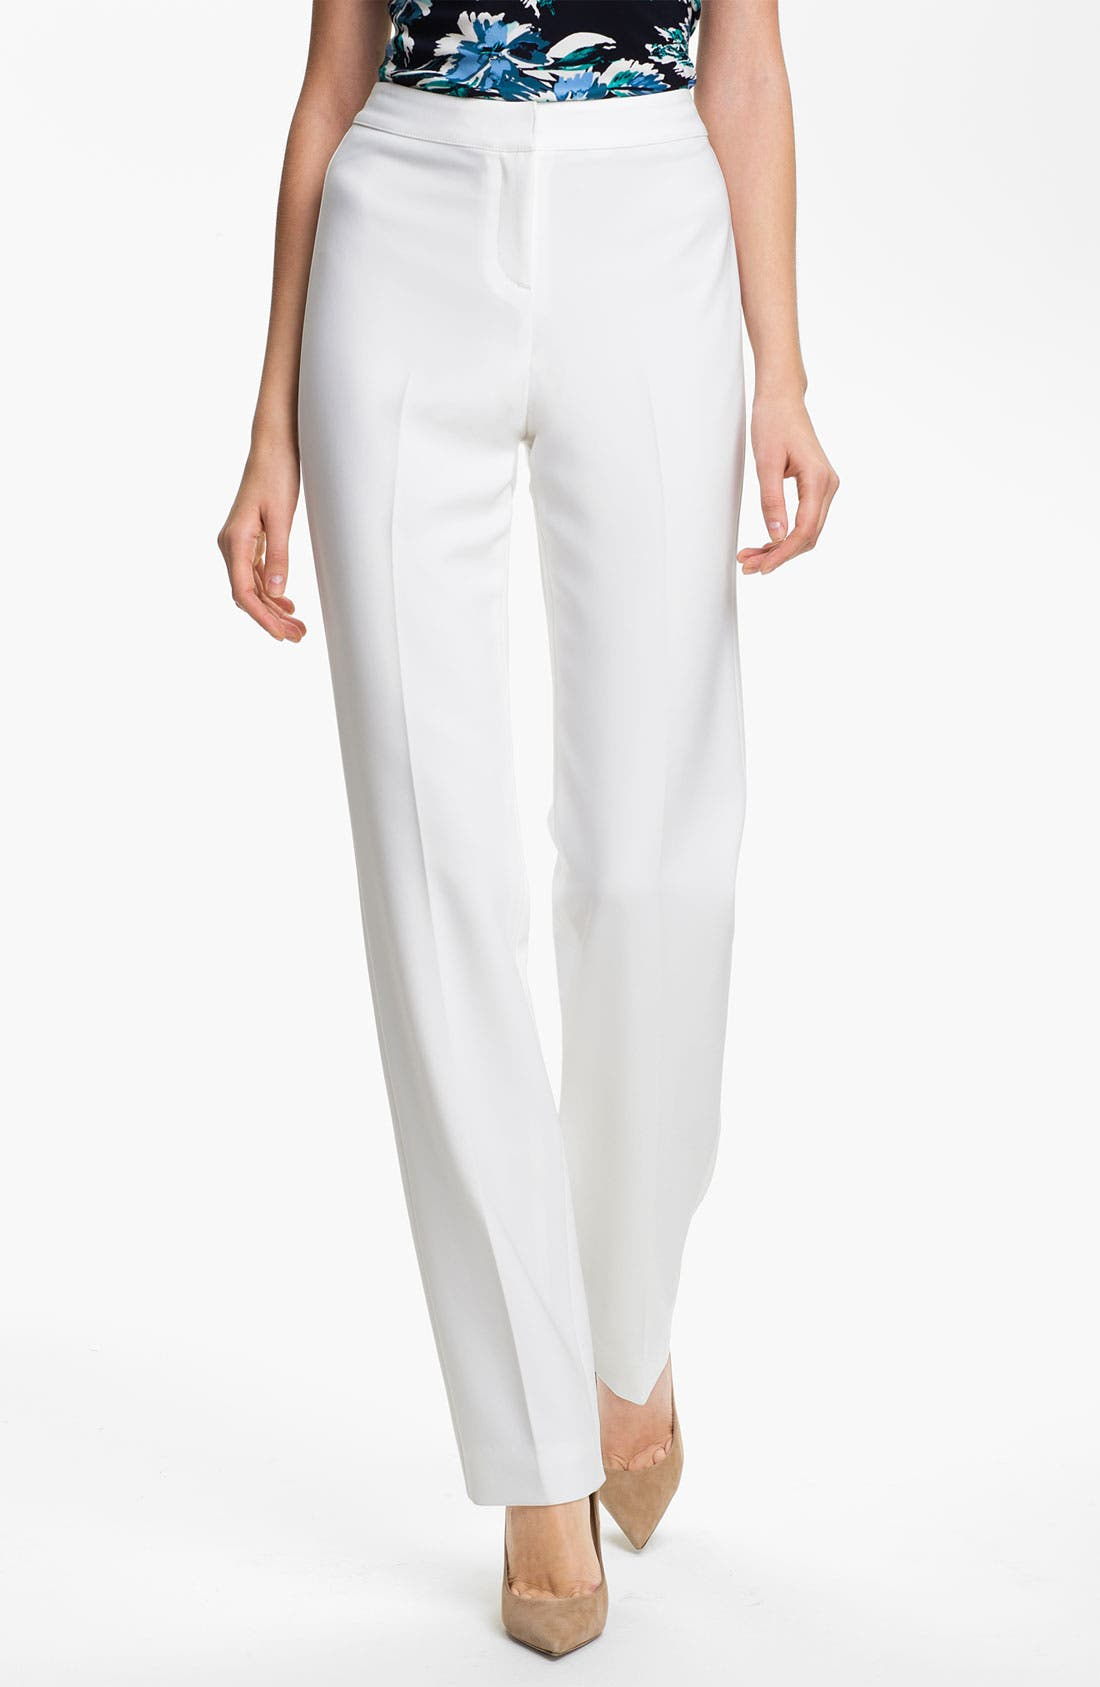 Main Image - St. John Collection 'Diana' Straight Leg Crepe Marocain Pants